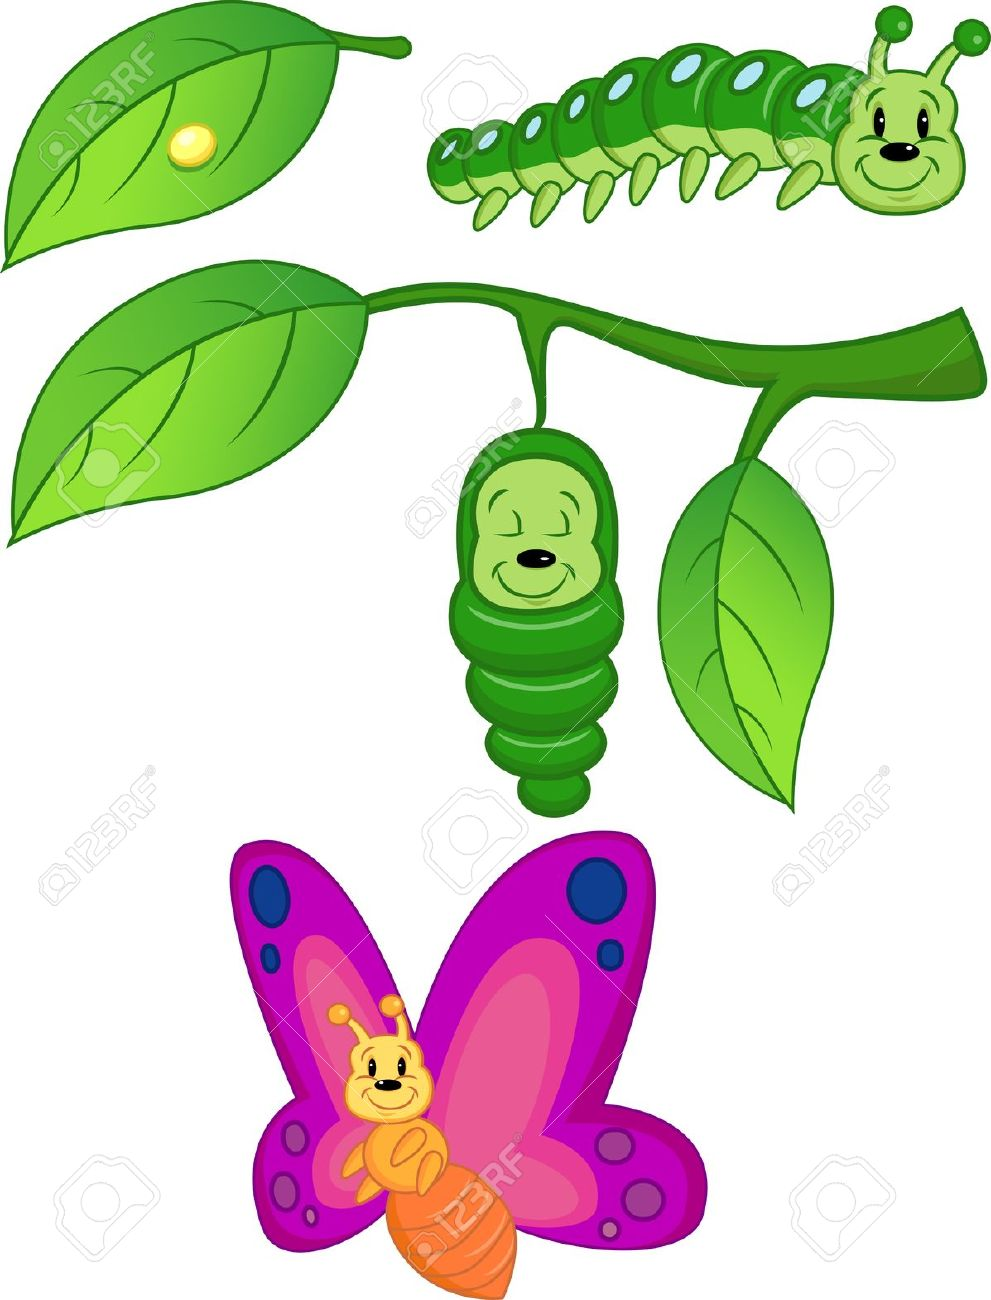 Cocoon butterfly stock image clipart free.